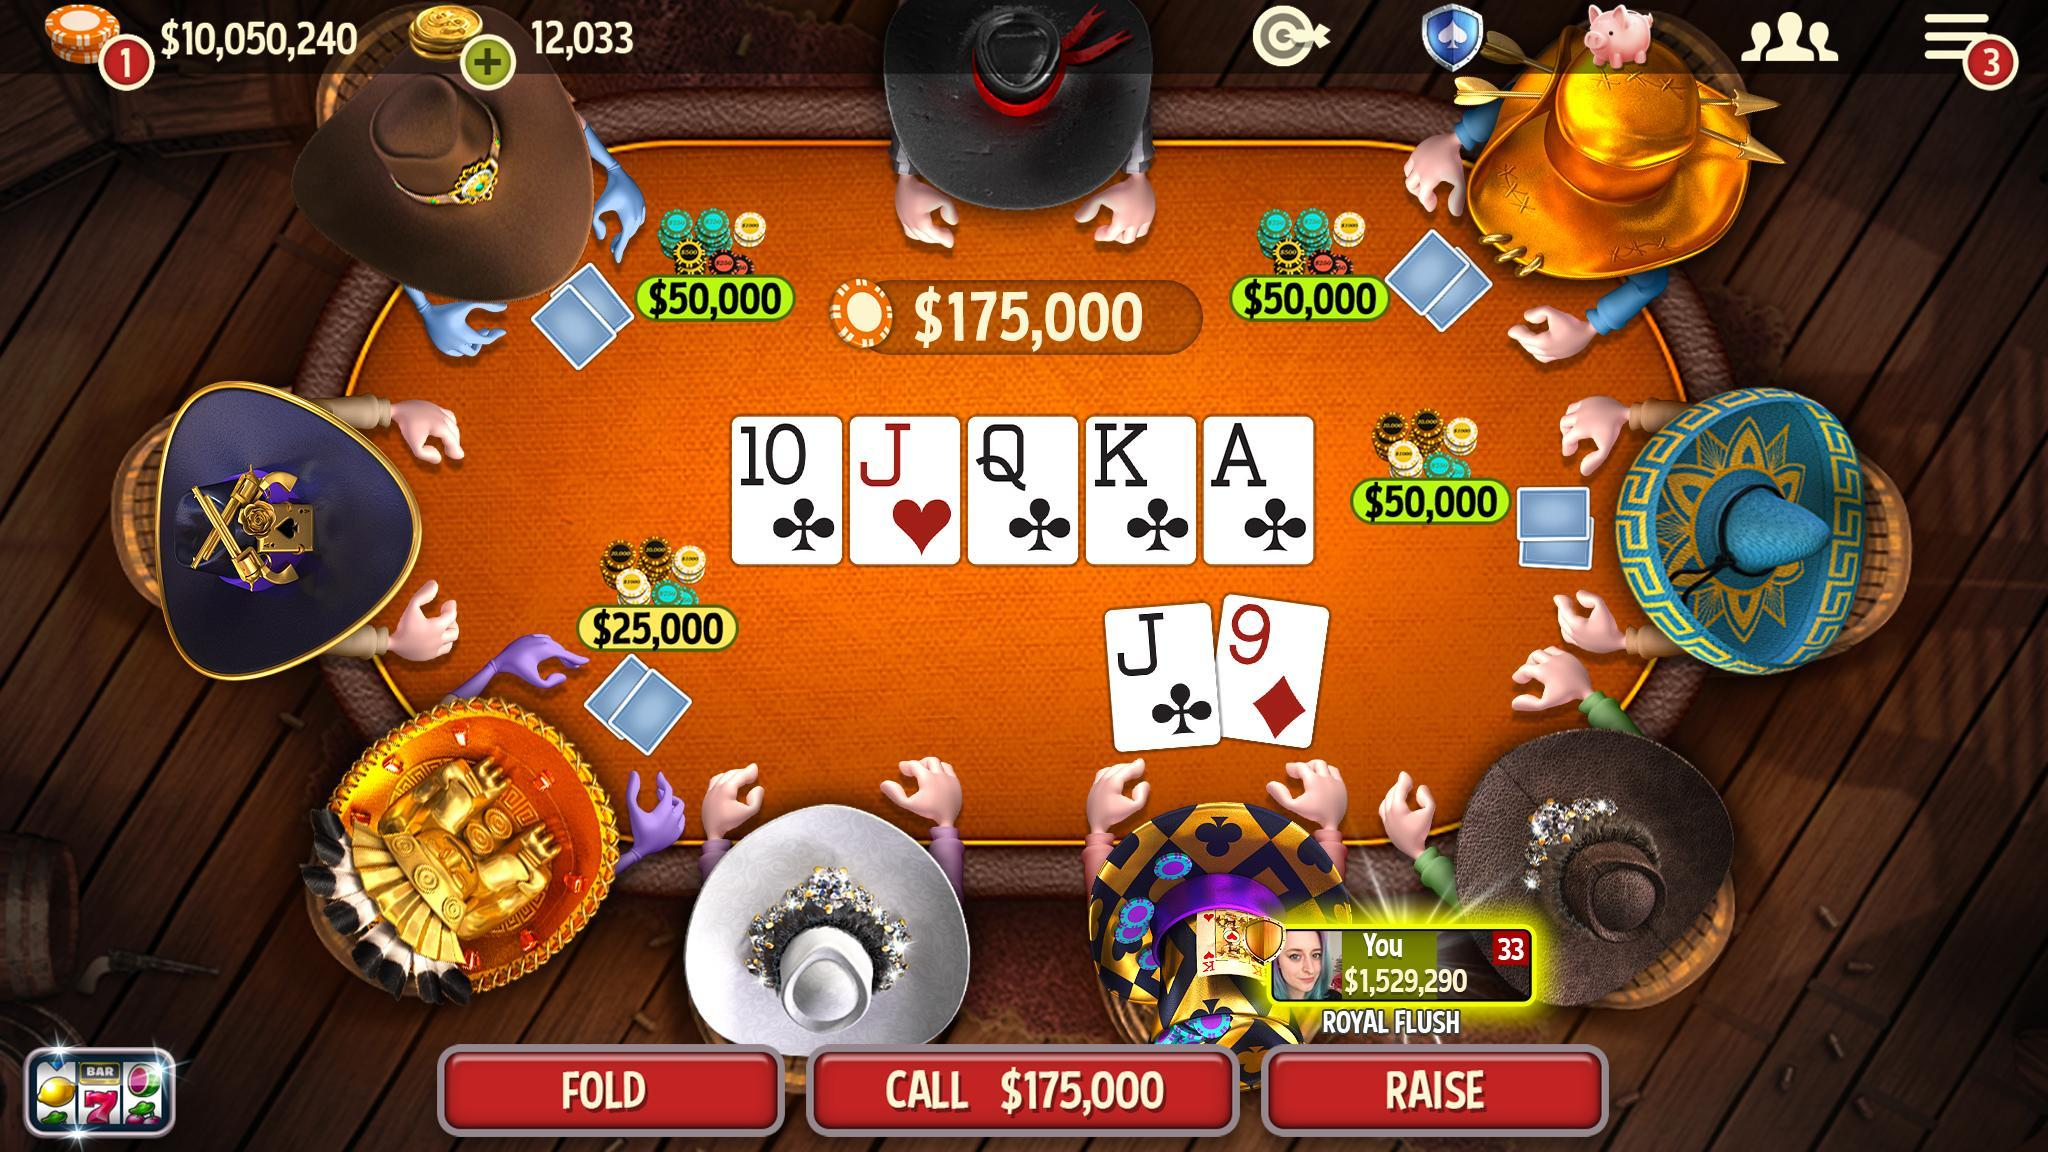 Governor of Poker 3 - Texas Holdem With Friends 6.9.1 Screenshot 12